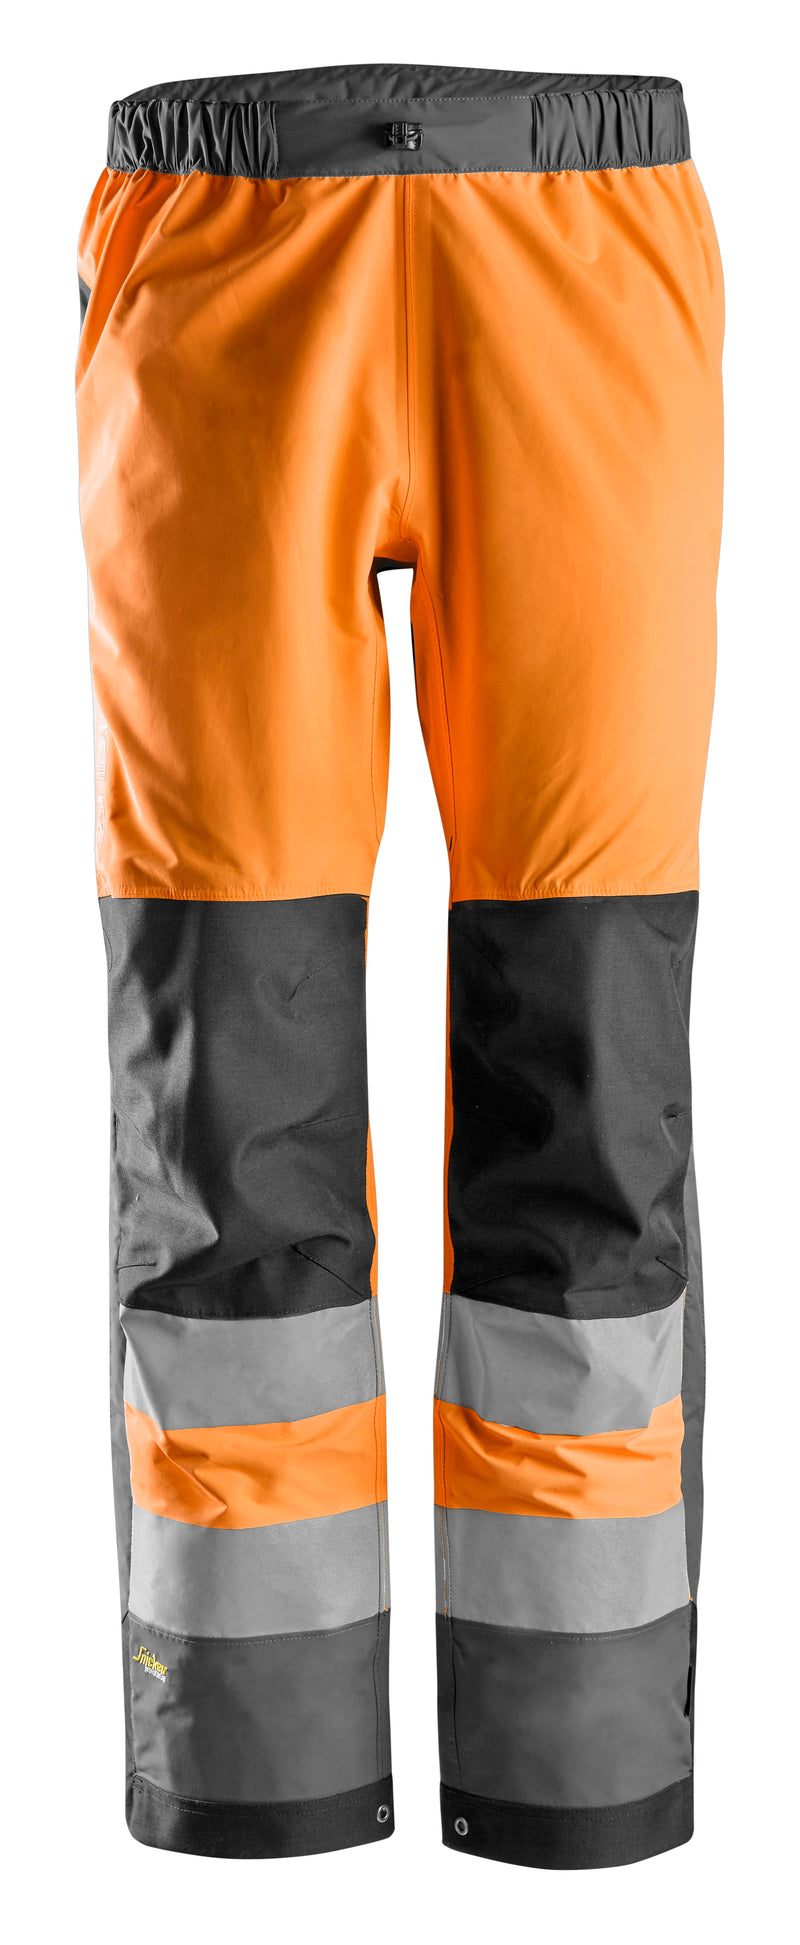 Snickers 6530 AllroundWork, High-Vis WP Shell Broek Klasse 2 - Snickers Werkkledij